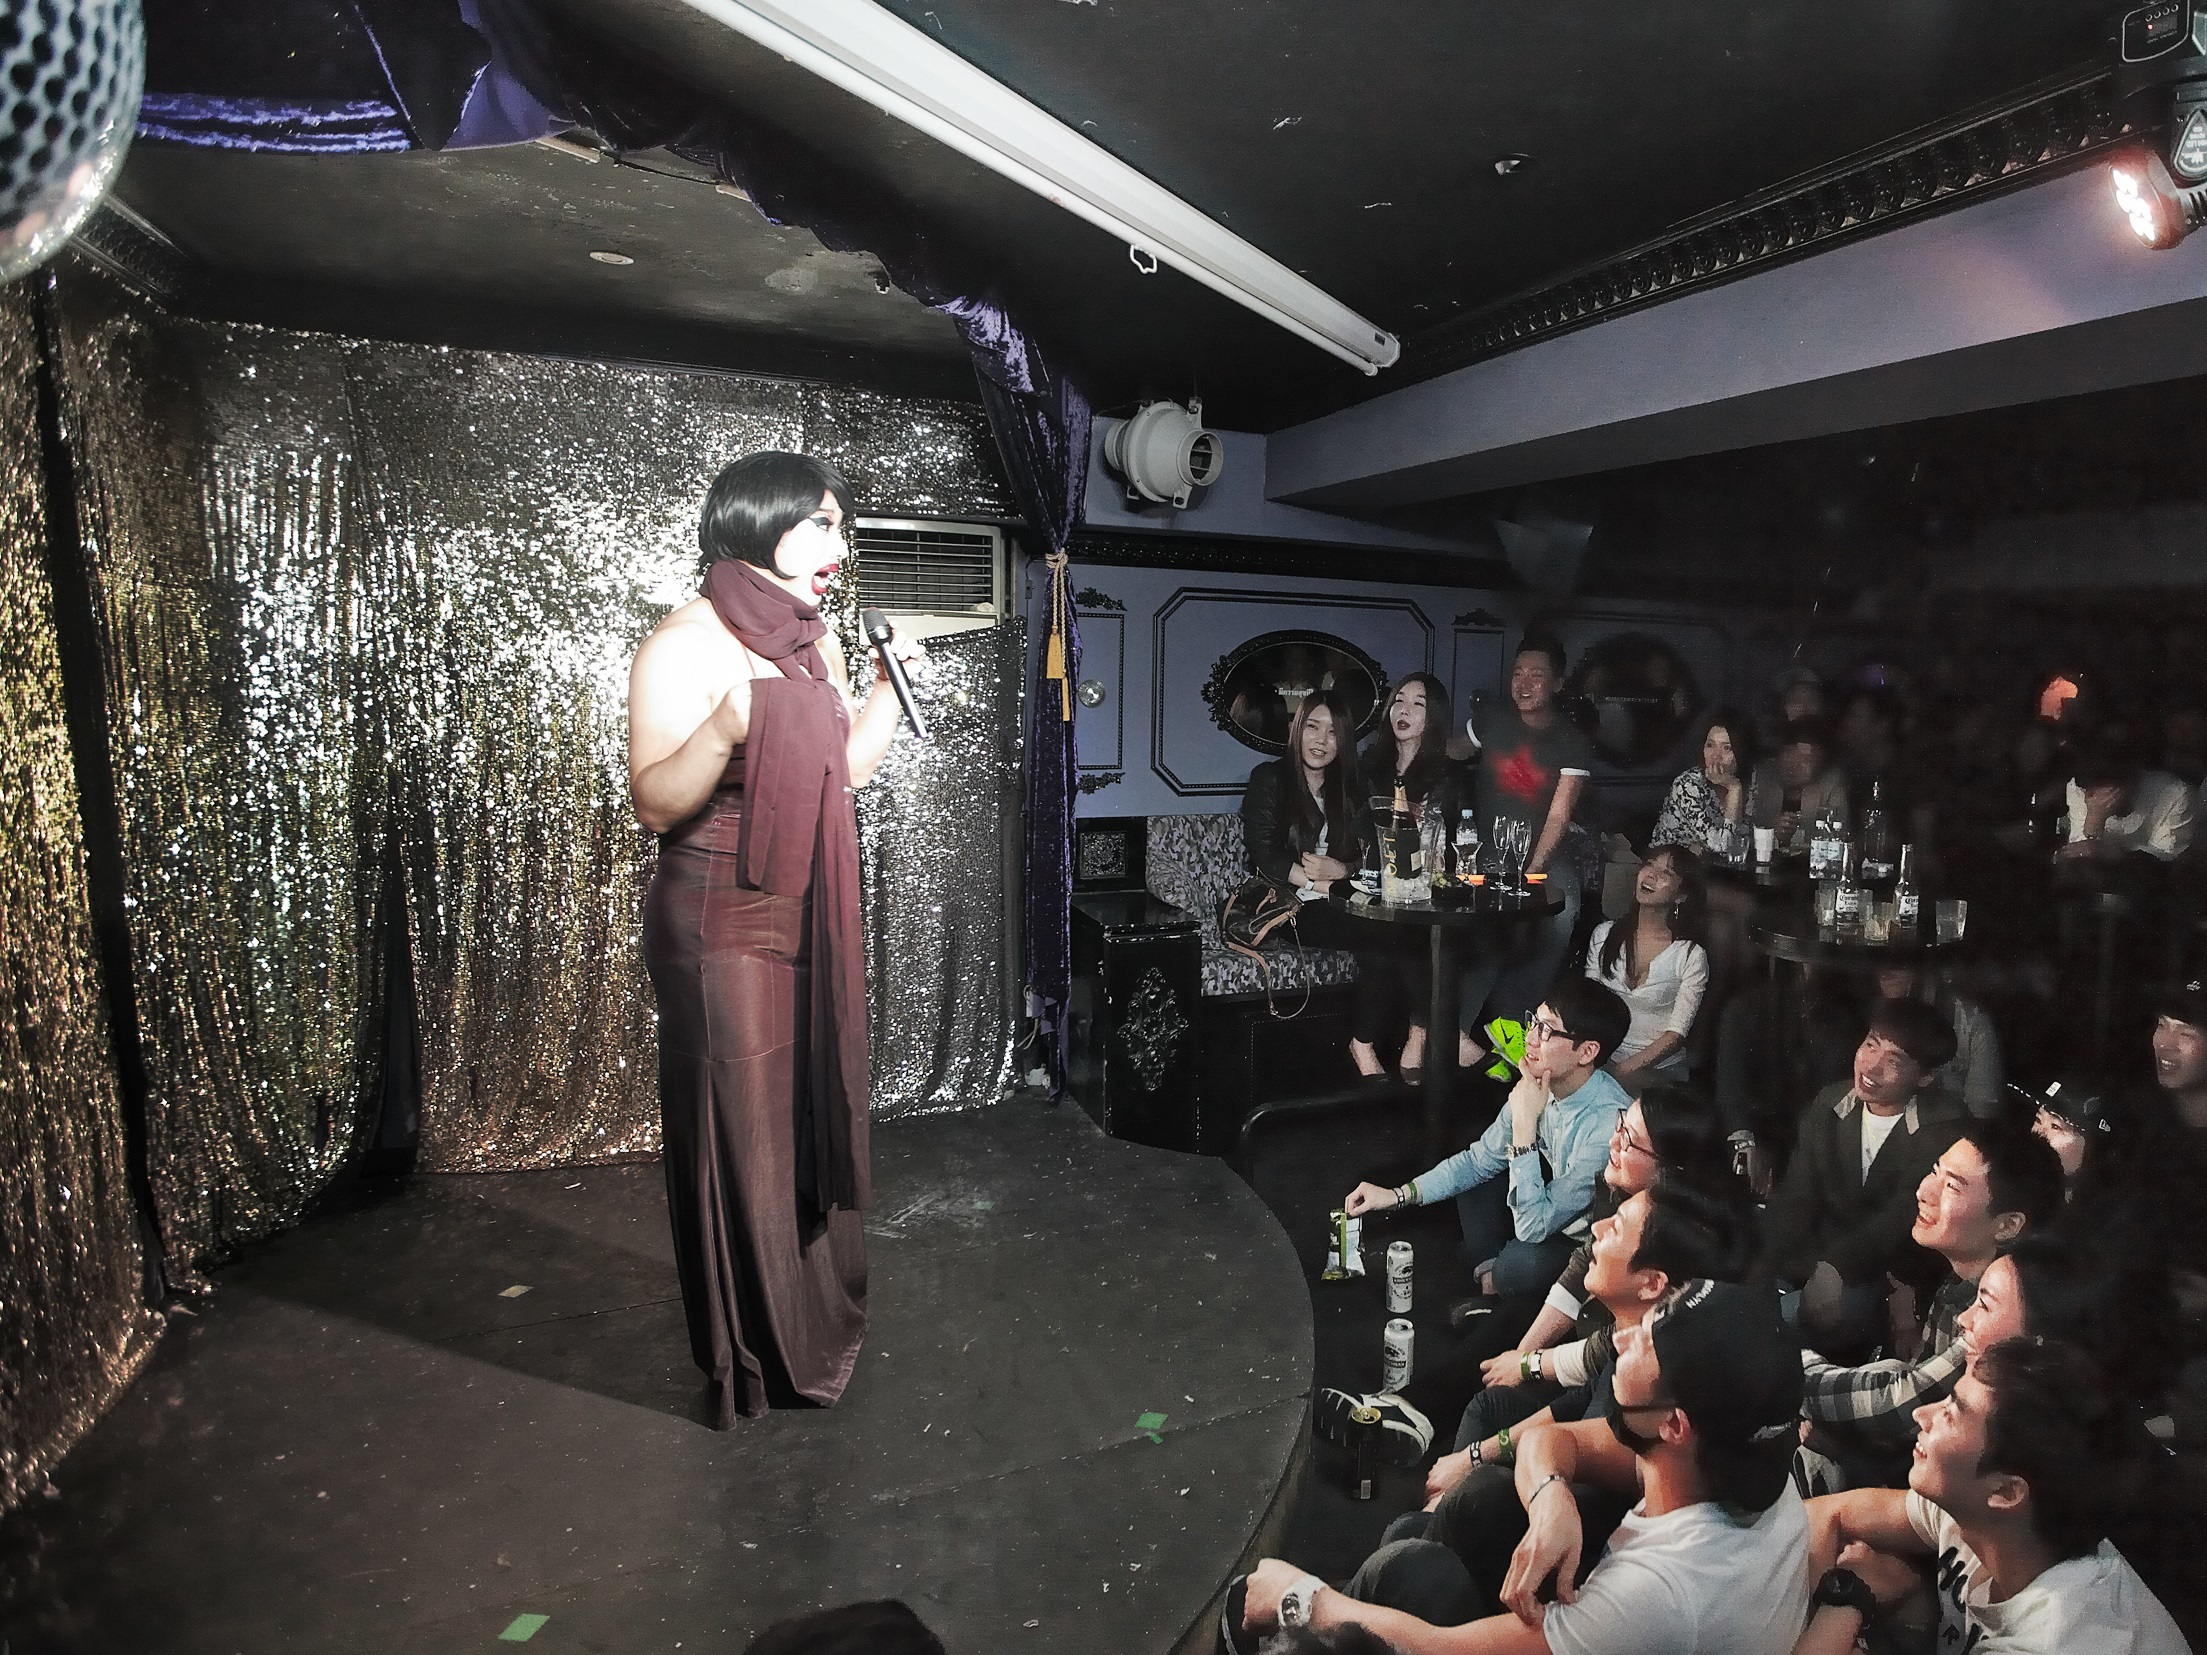 Transexual clubs melbourne